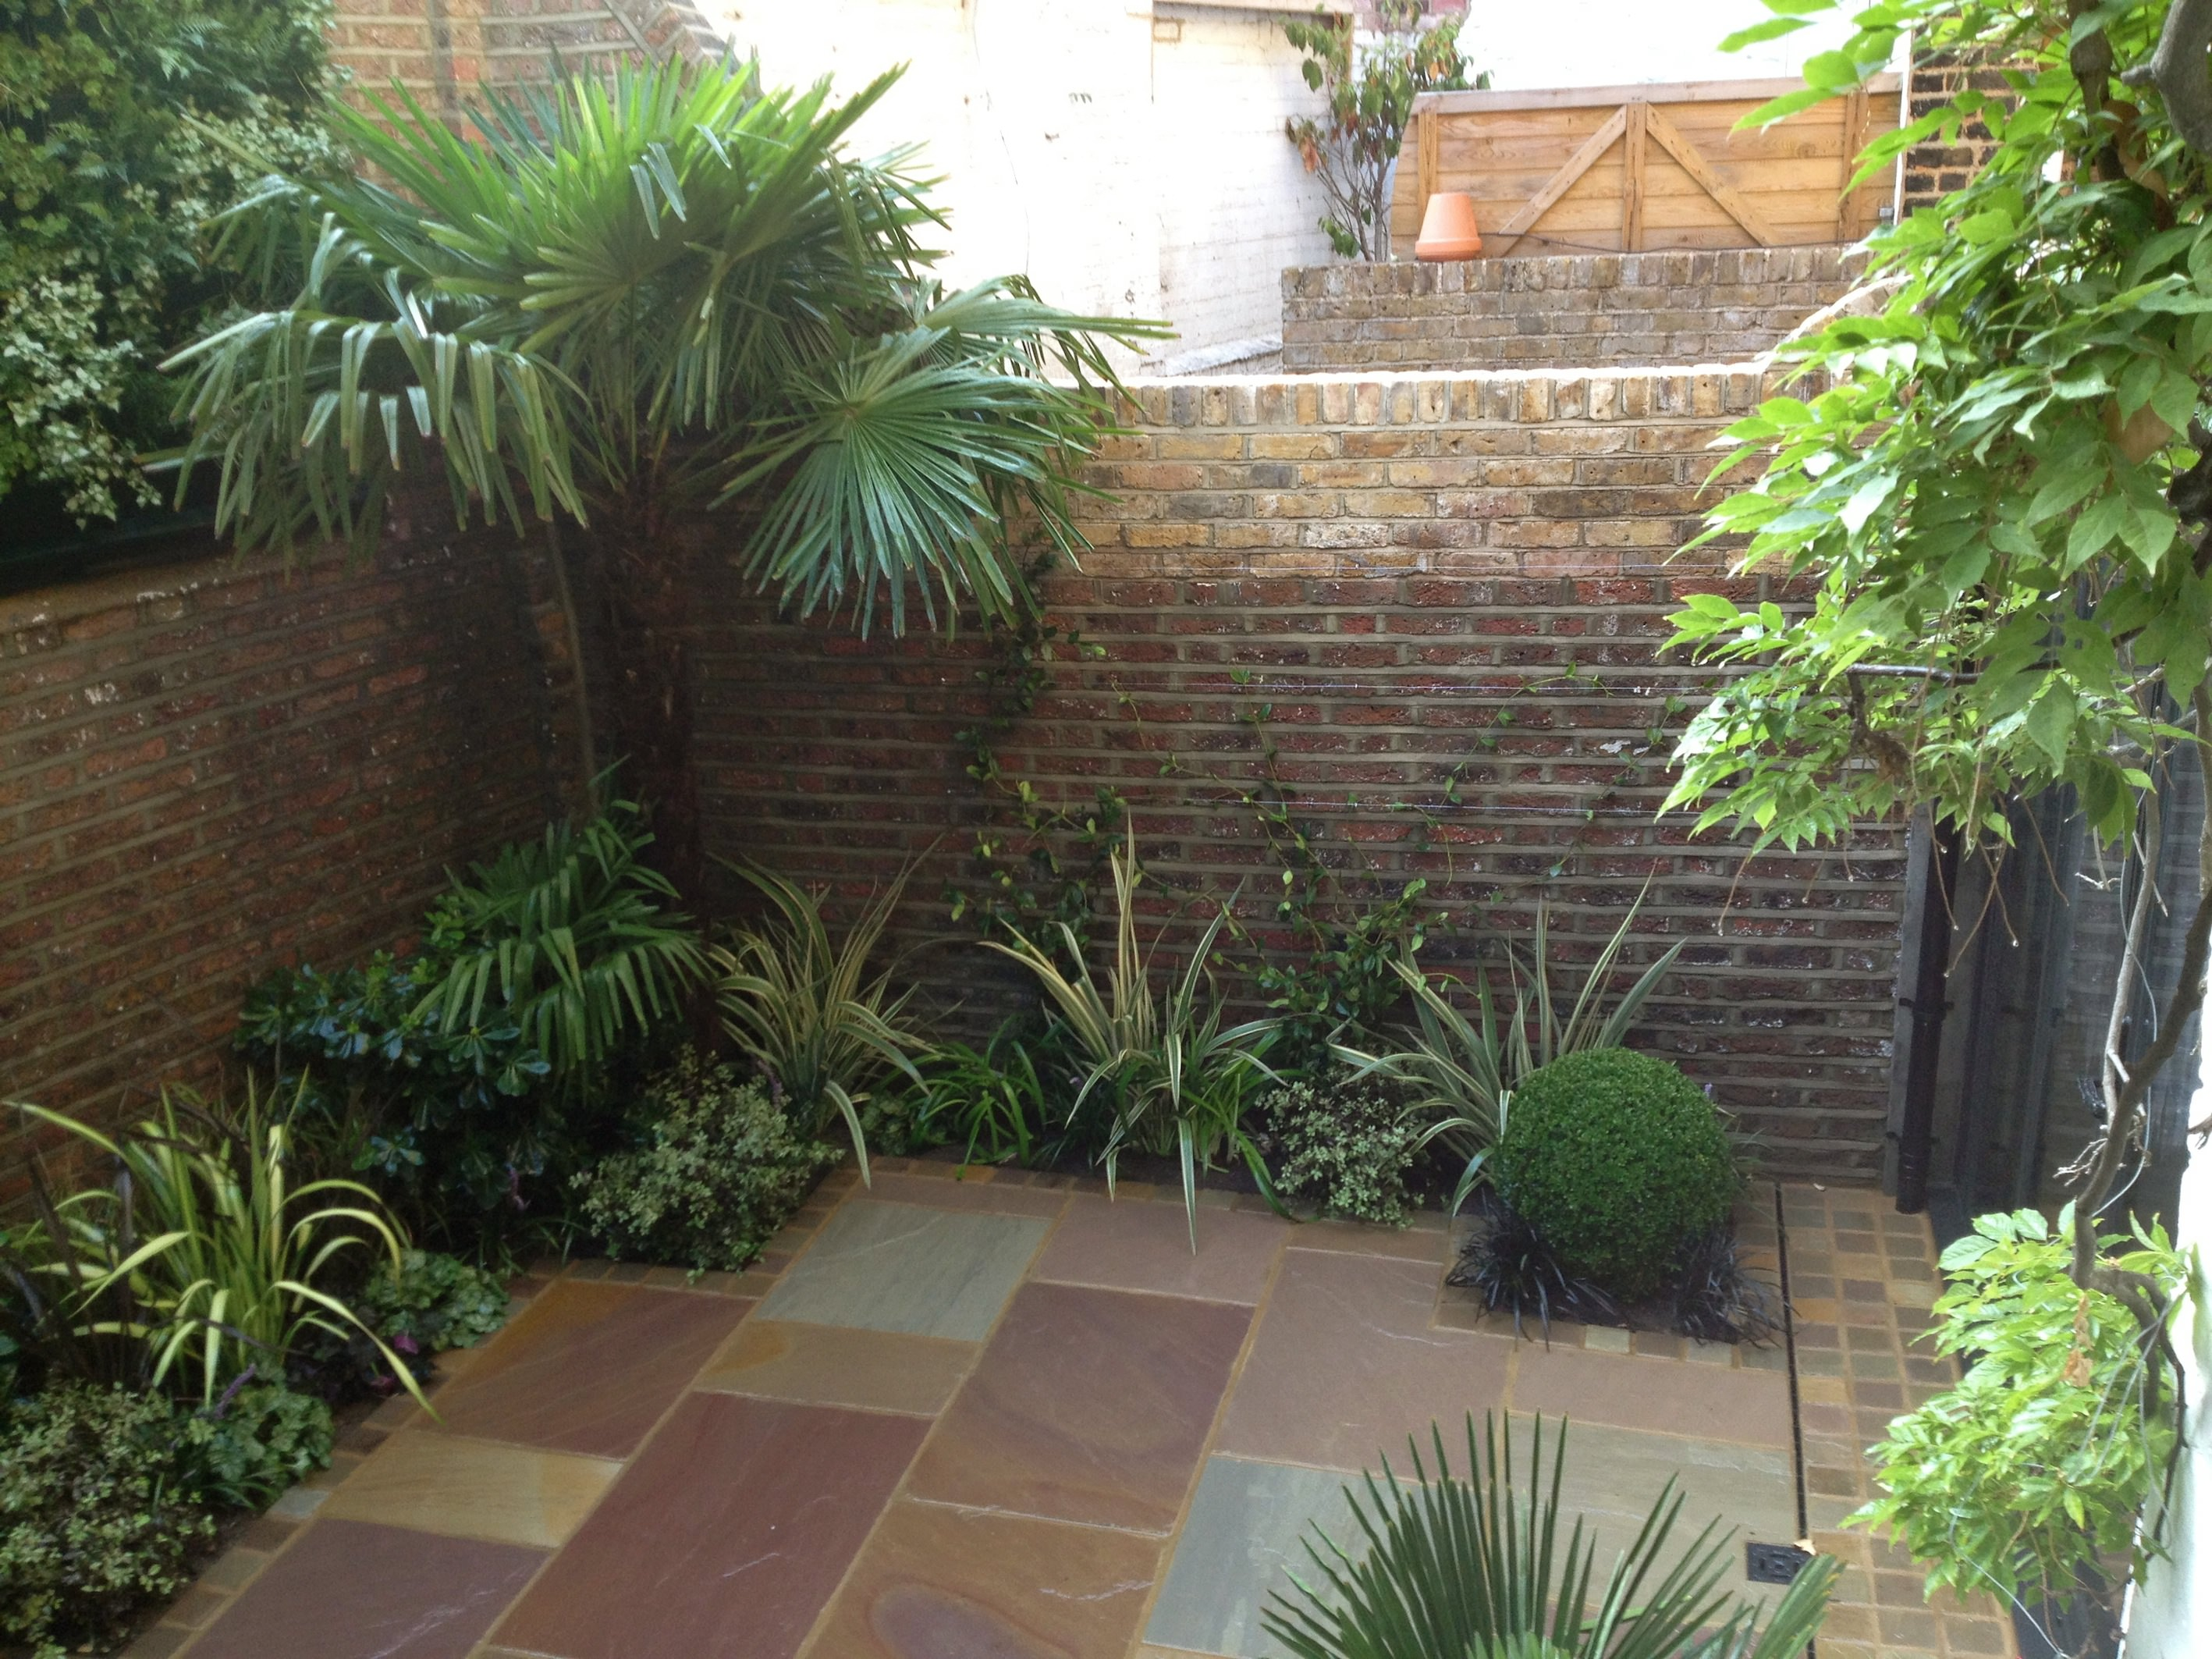 Low maintenance garden designs garden club london for Paved garden designs